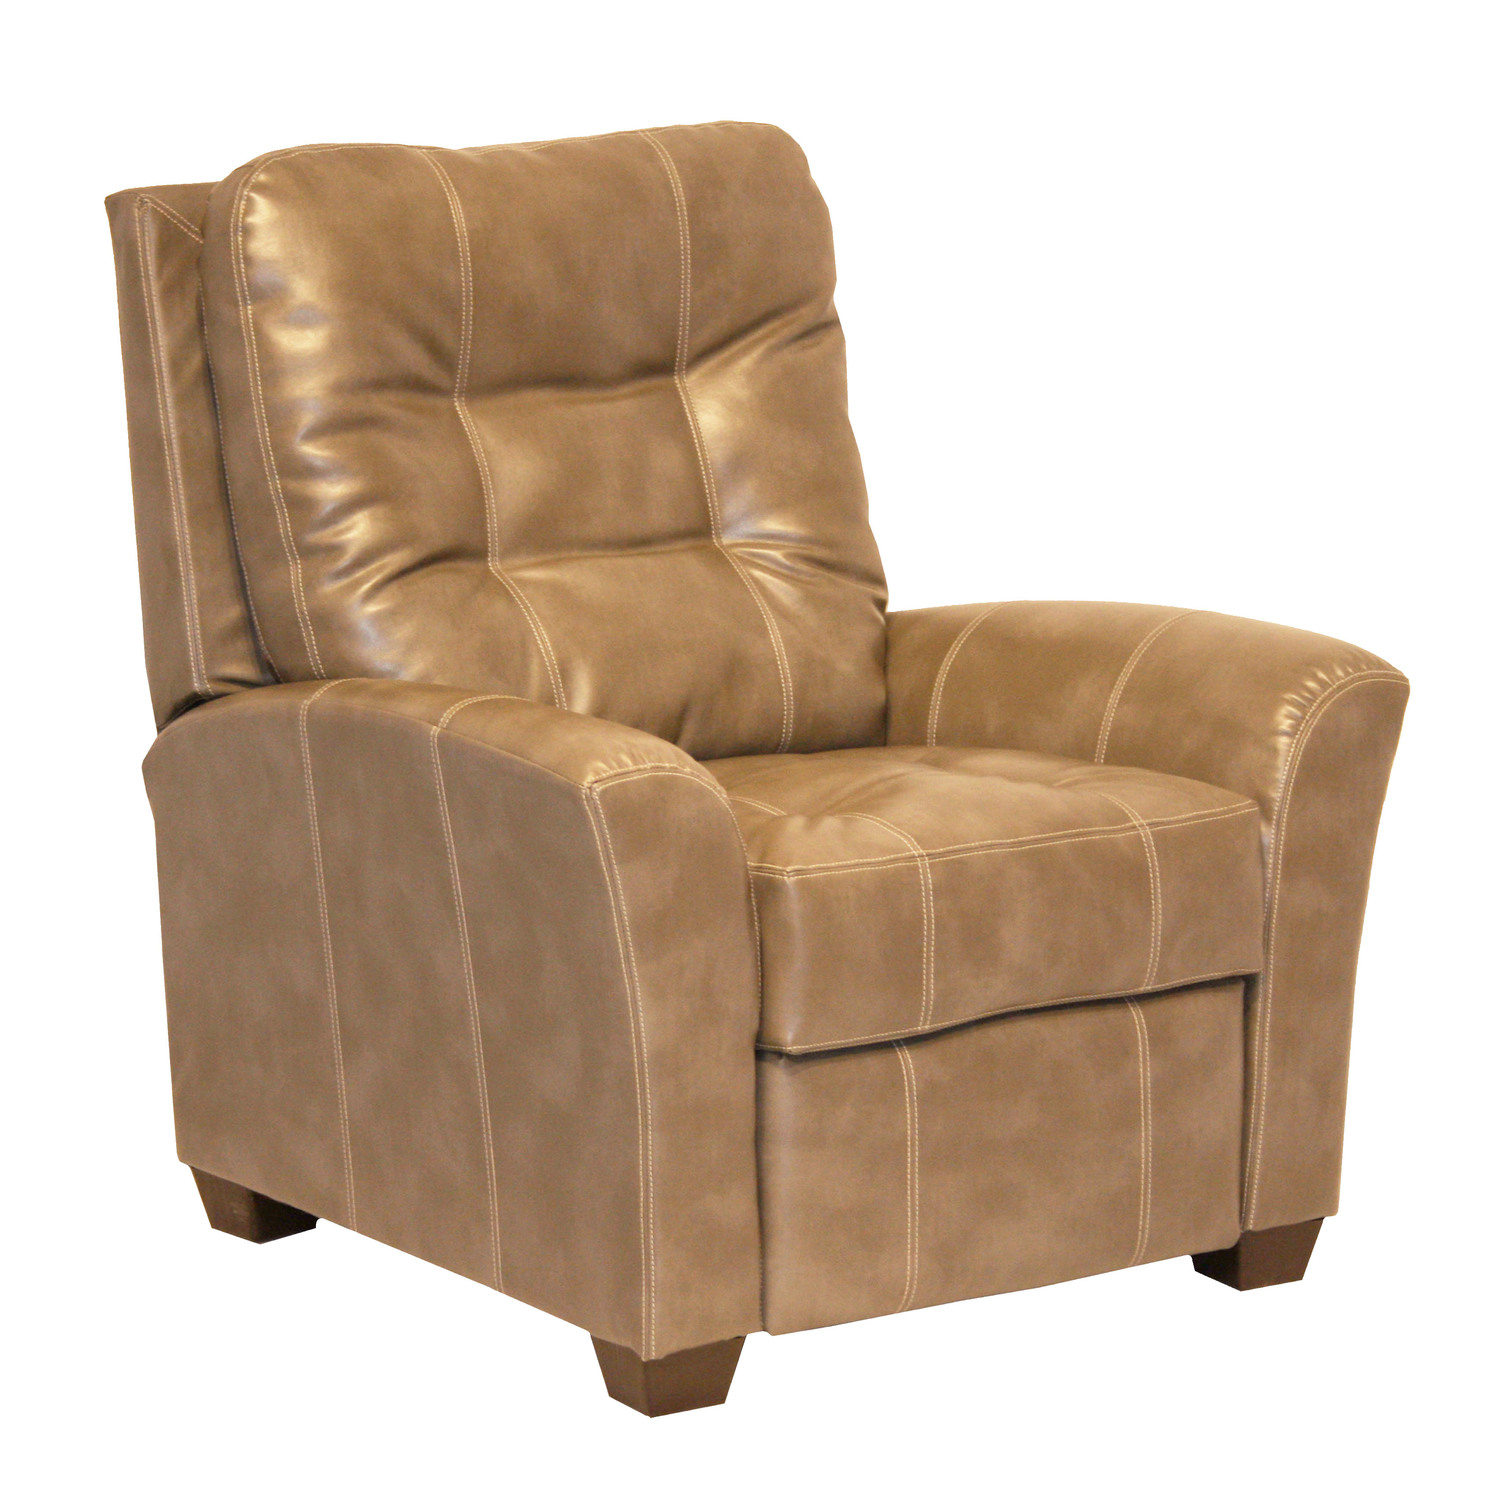 Catnapper Cooper Leather Recliner By Oj Commerce 539 00